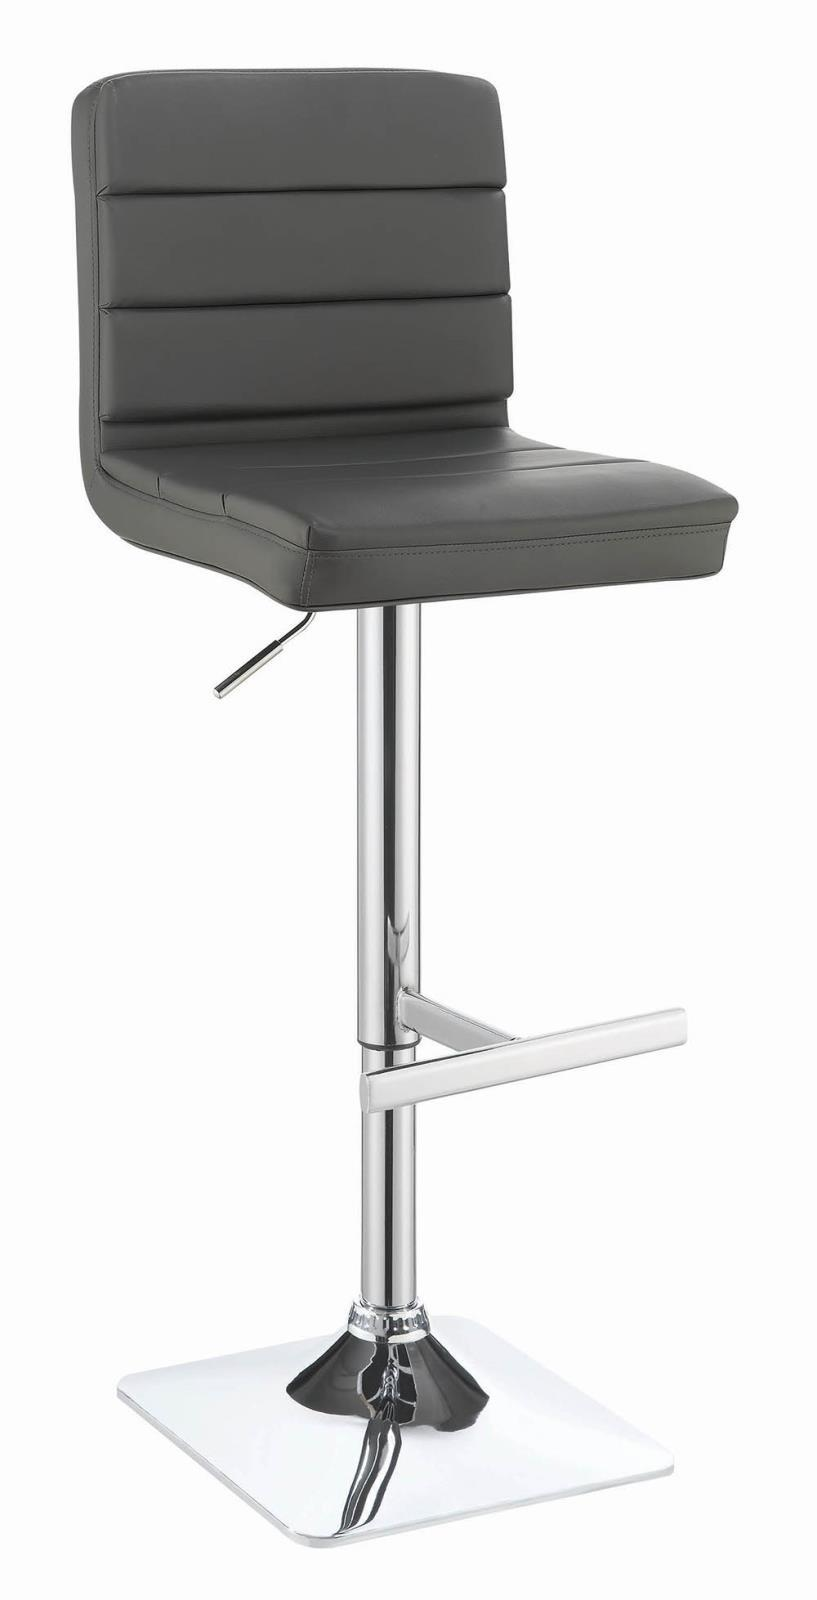 Rec Room/ Bar Tables: Chrome/glass - Grey - Upholstered Adjustable Bar Stools Grey And Chrome (Set of 2)